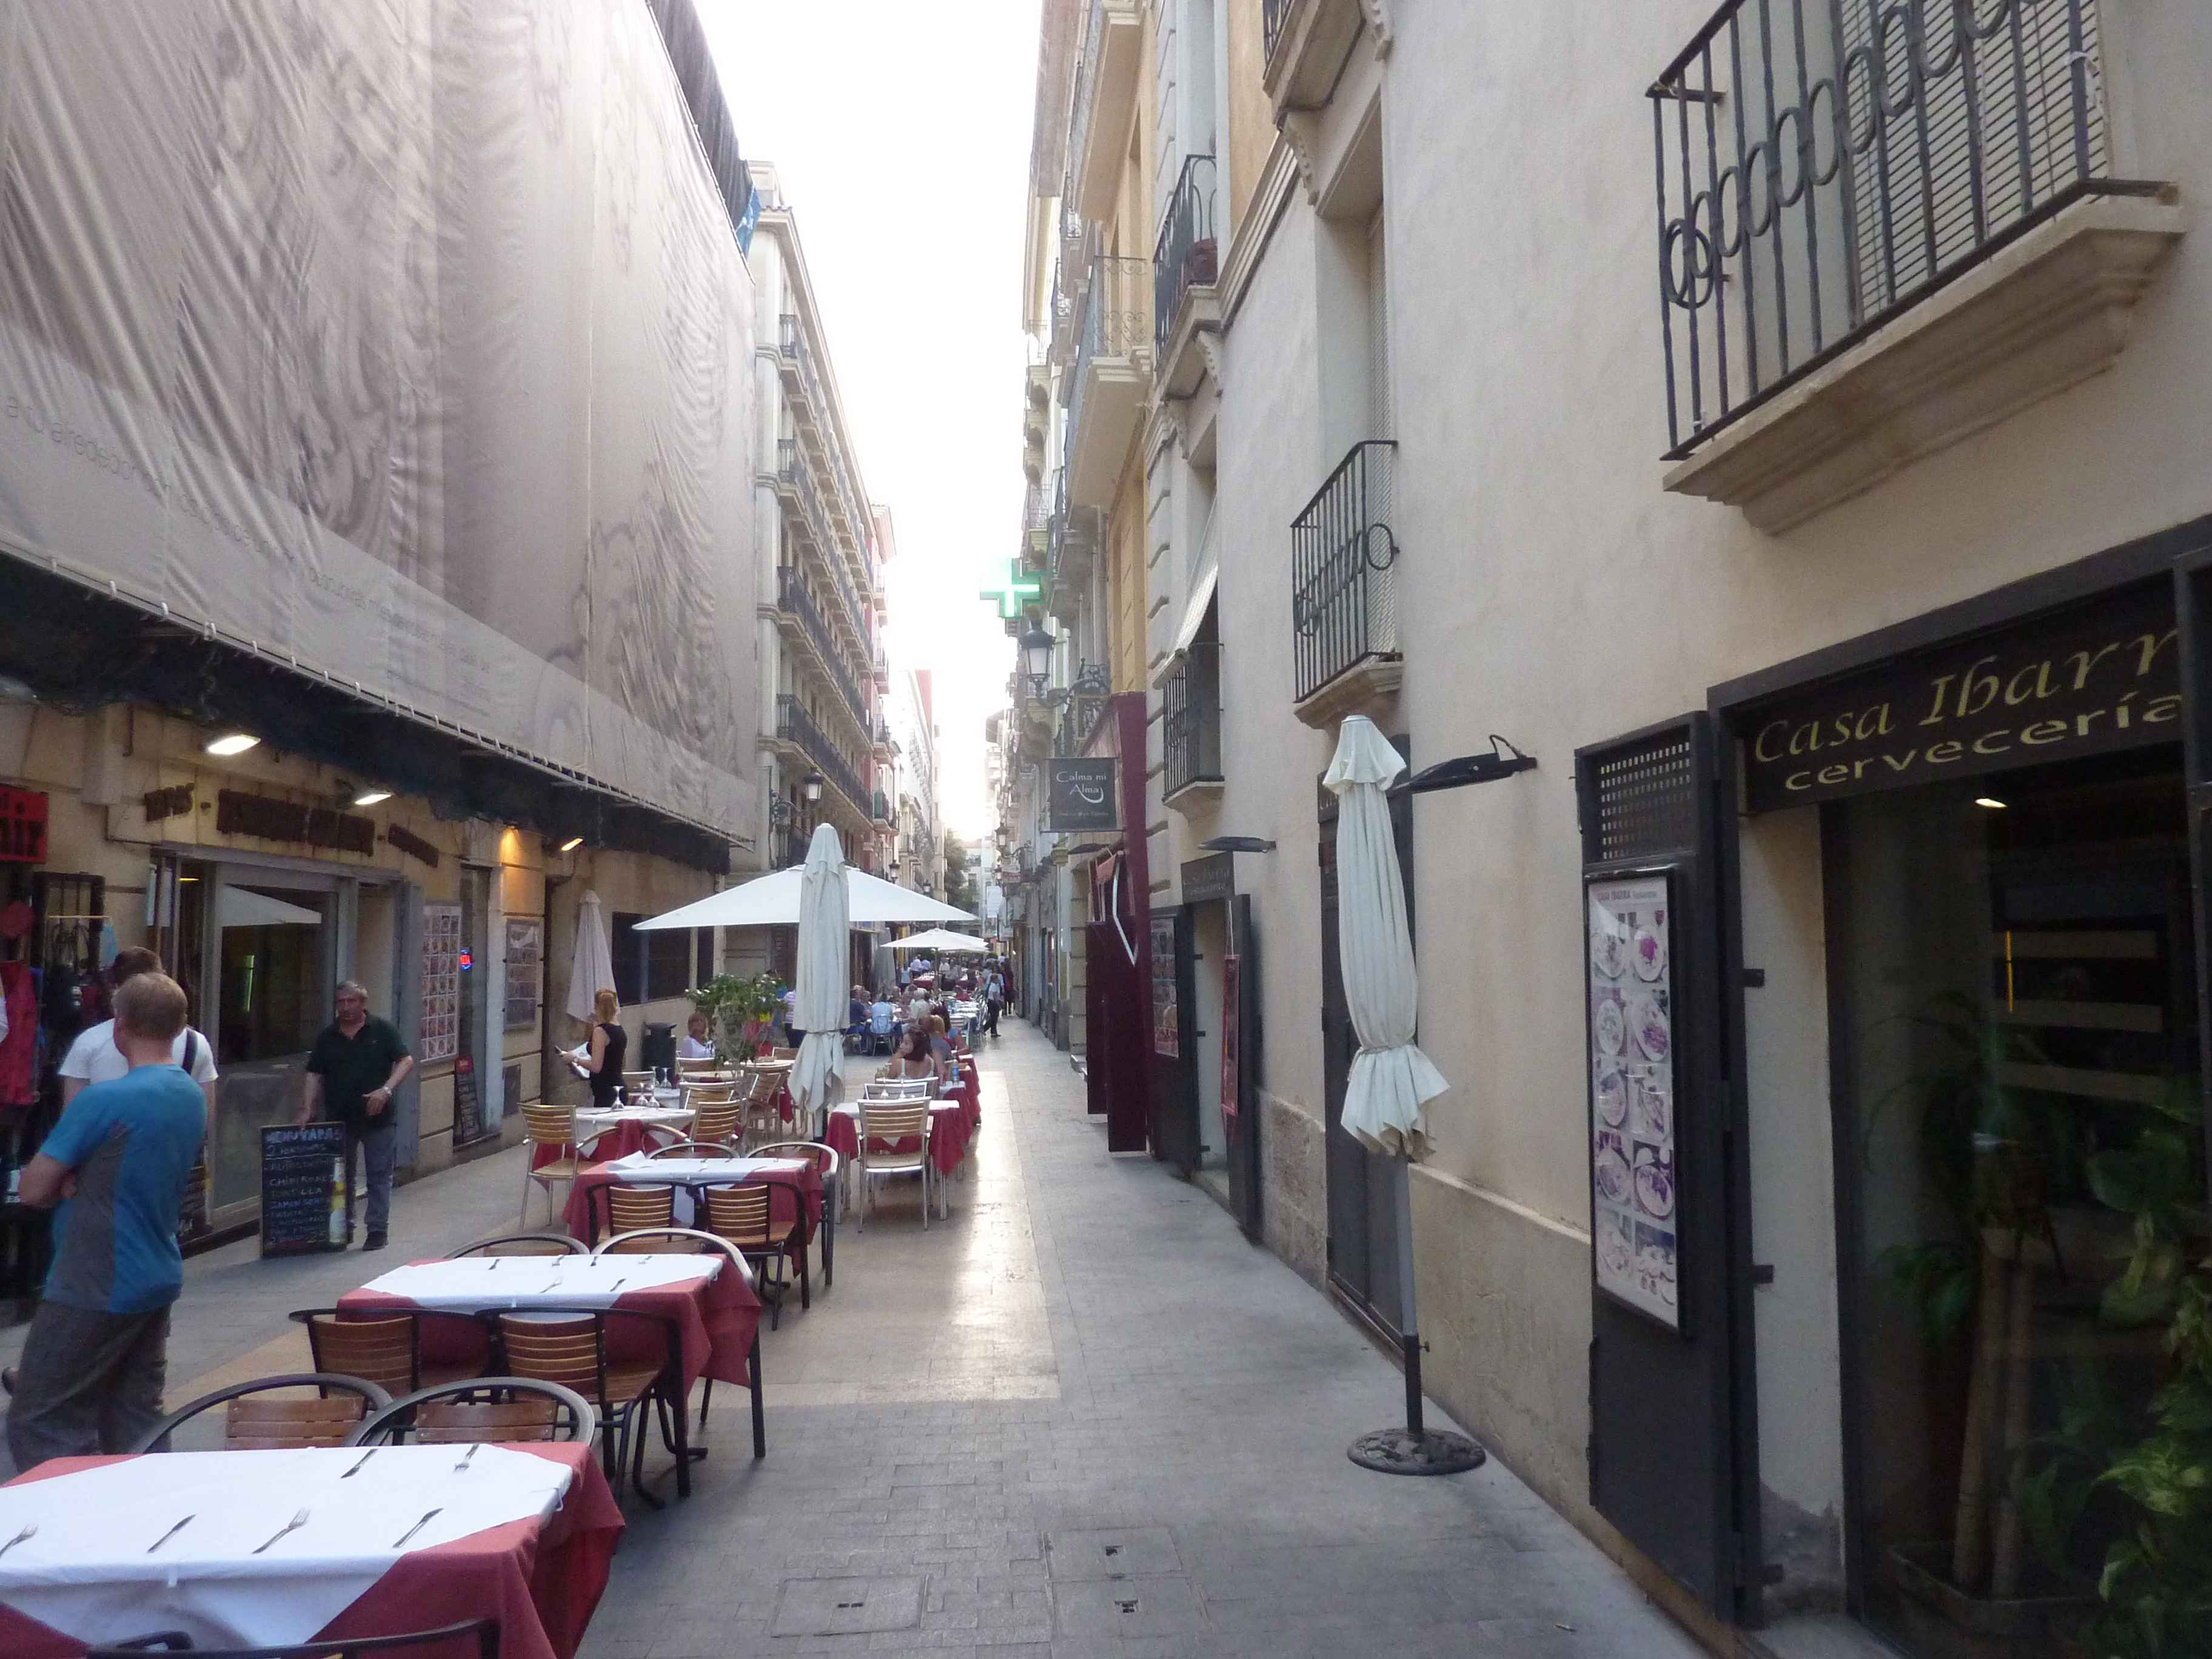 Ruelles Et Restaurants De Alicante en Images